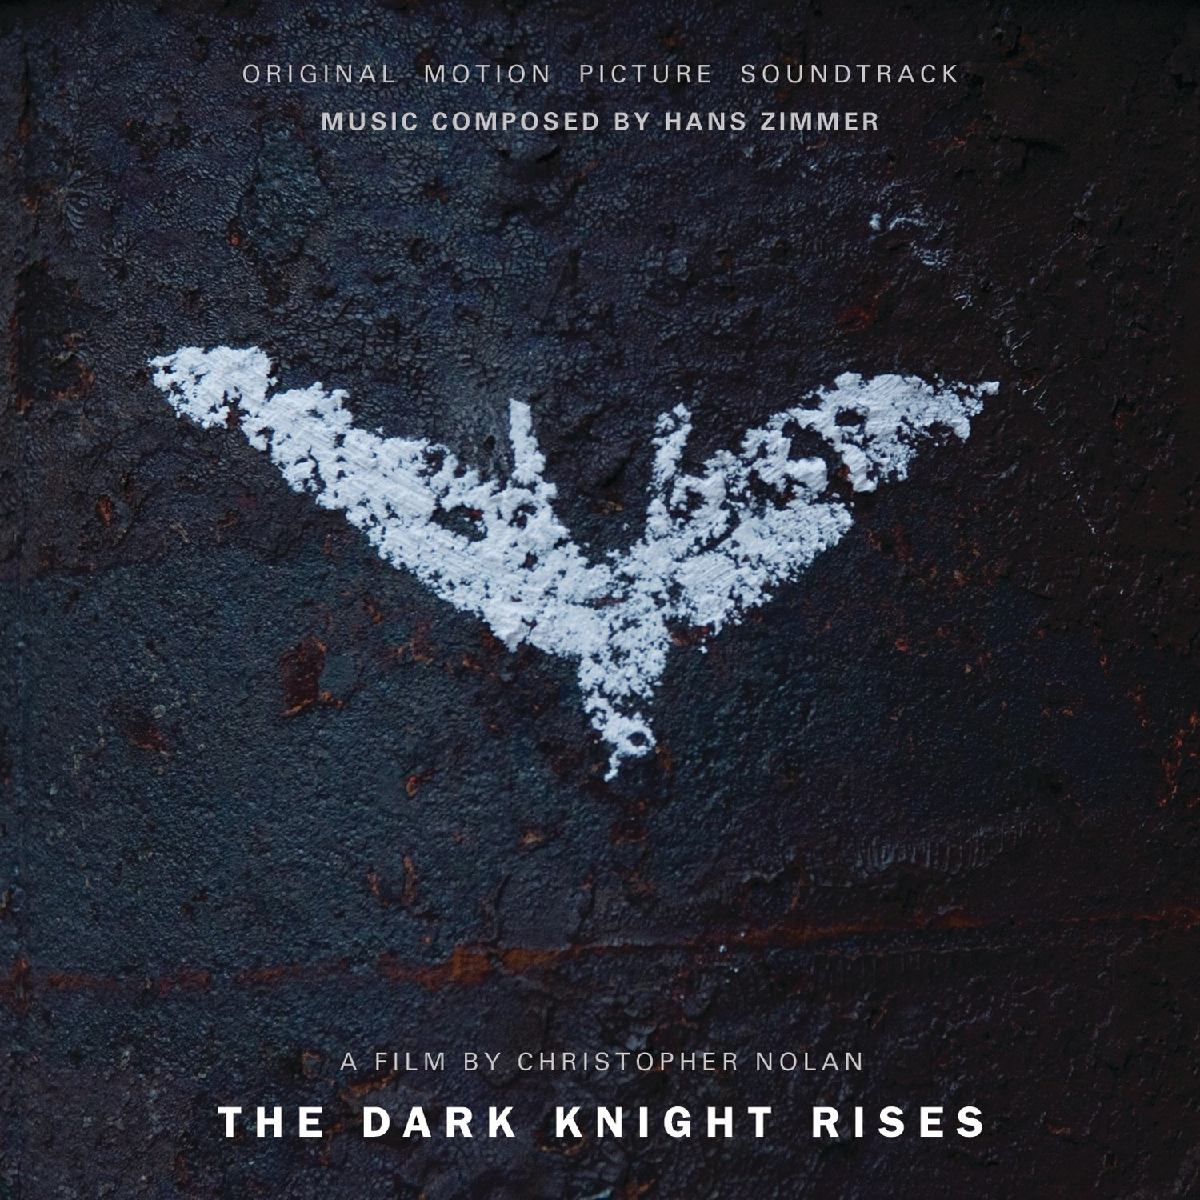 &#8216;The Dark Knight Rises&#8217; Soundtrack